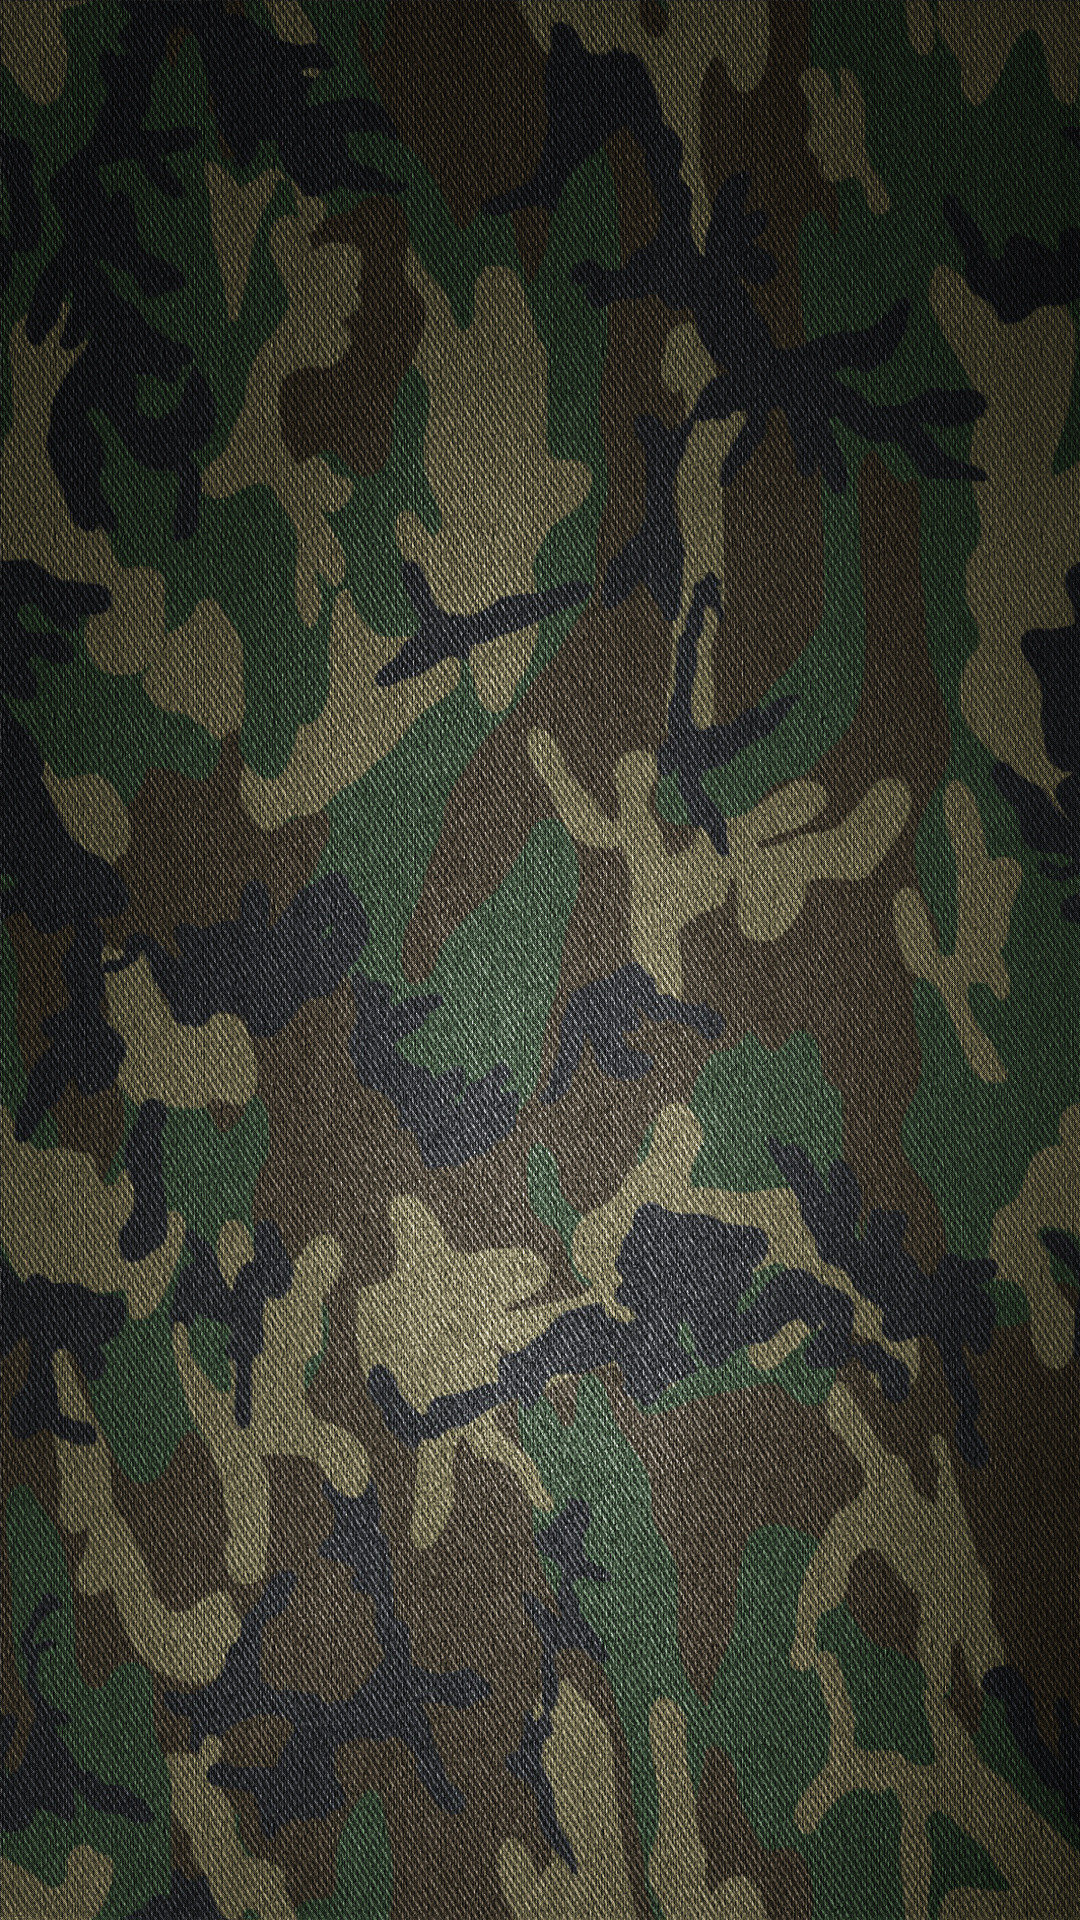 Camo wallpapers 73 background pictures - Pink camo iphone wallpaper ...